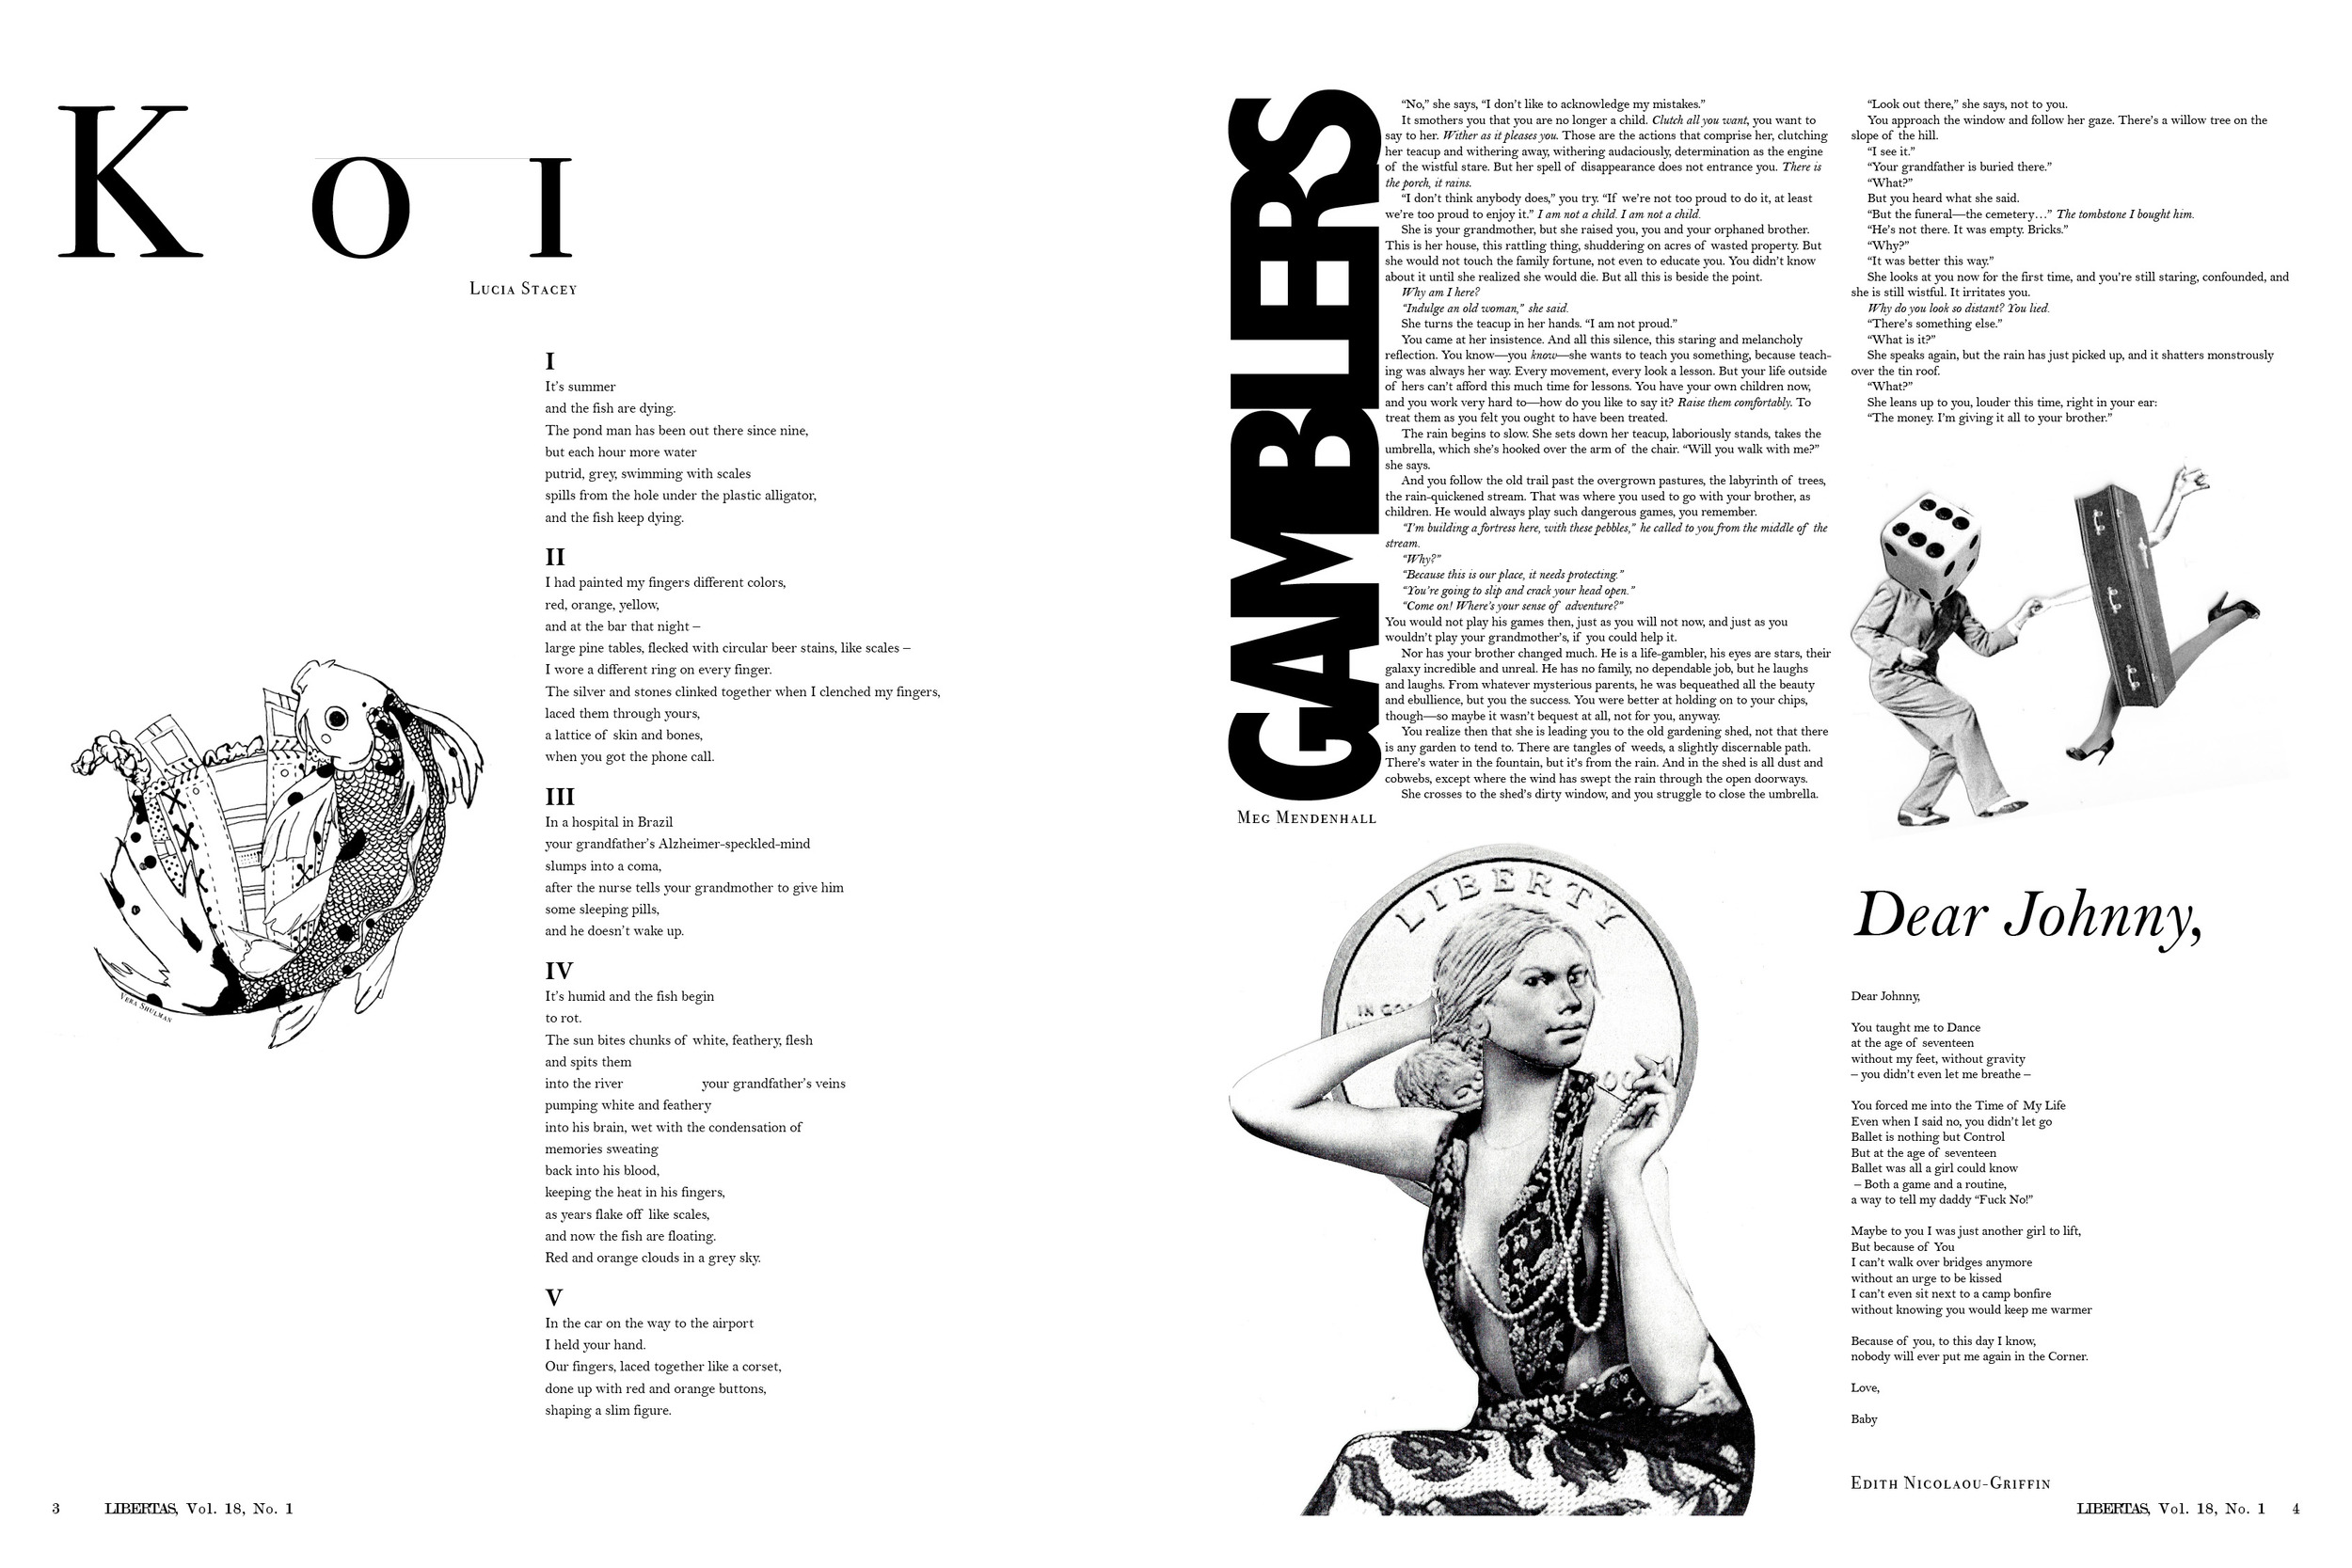 Corners Issue (Vol. 18, No. 1), pages 3-4, layout and page 4 collages